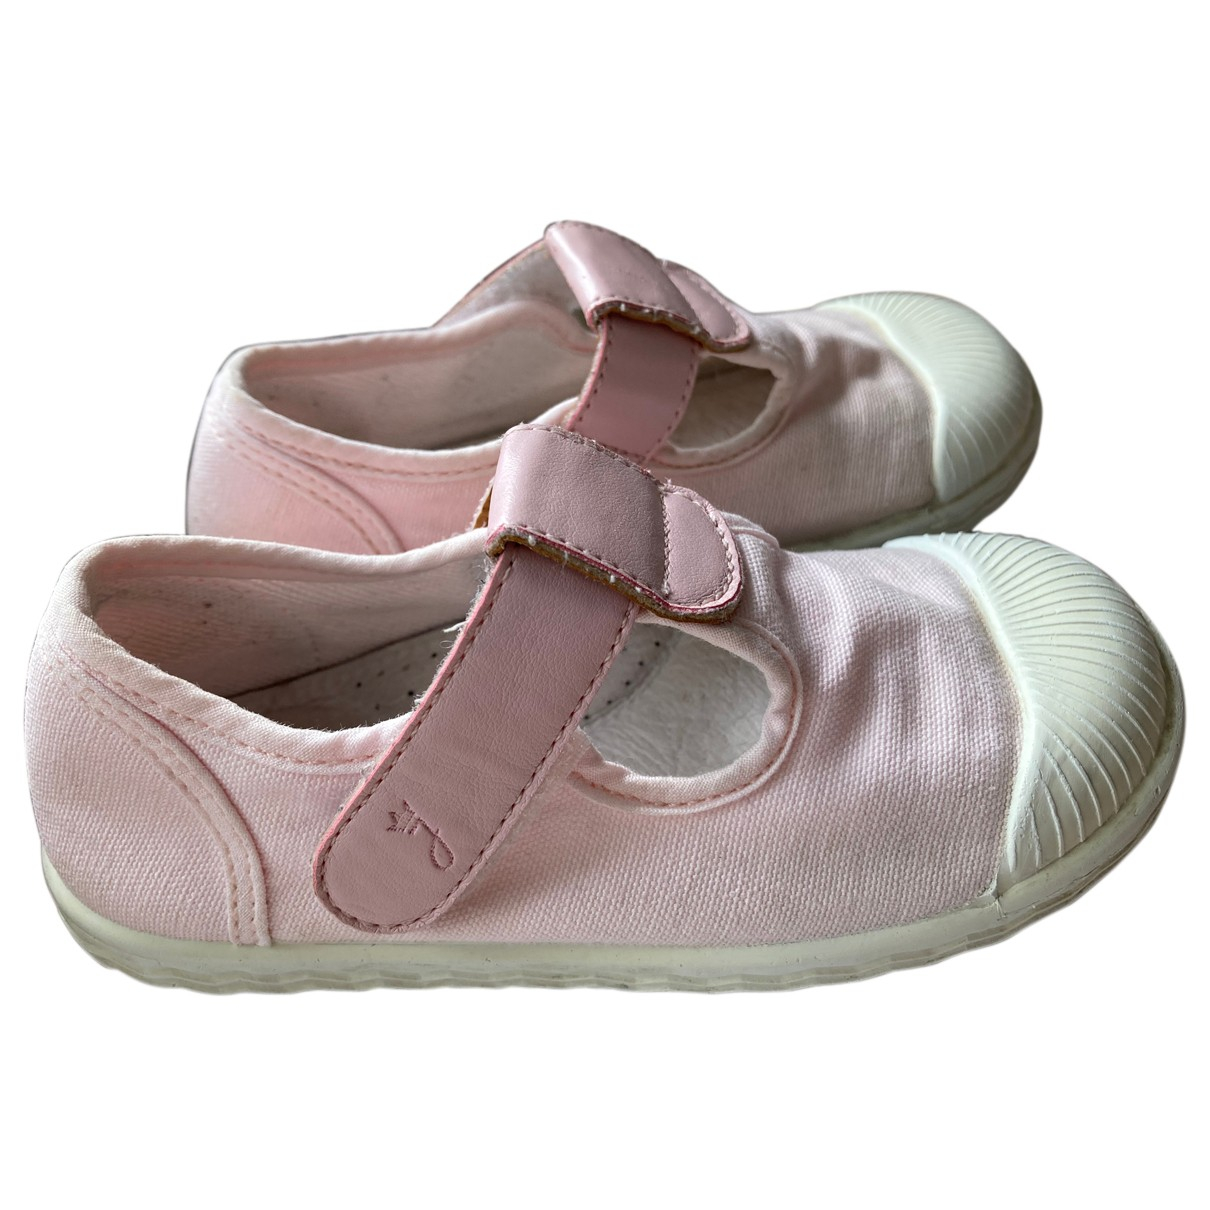 Jacadi N Pink Cloth Trainers for Kids 25 FR